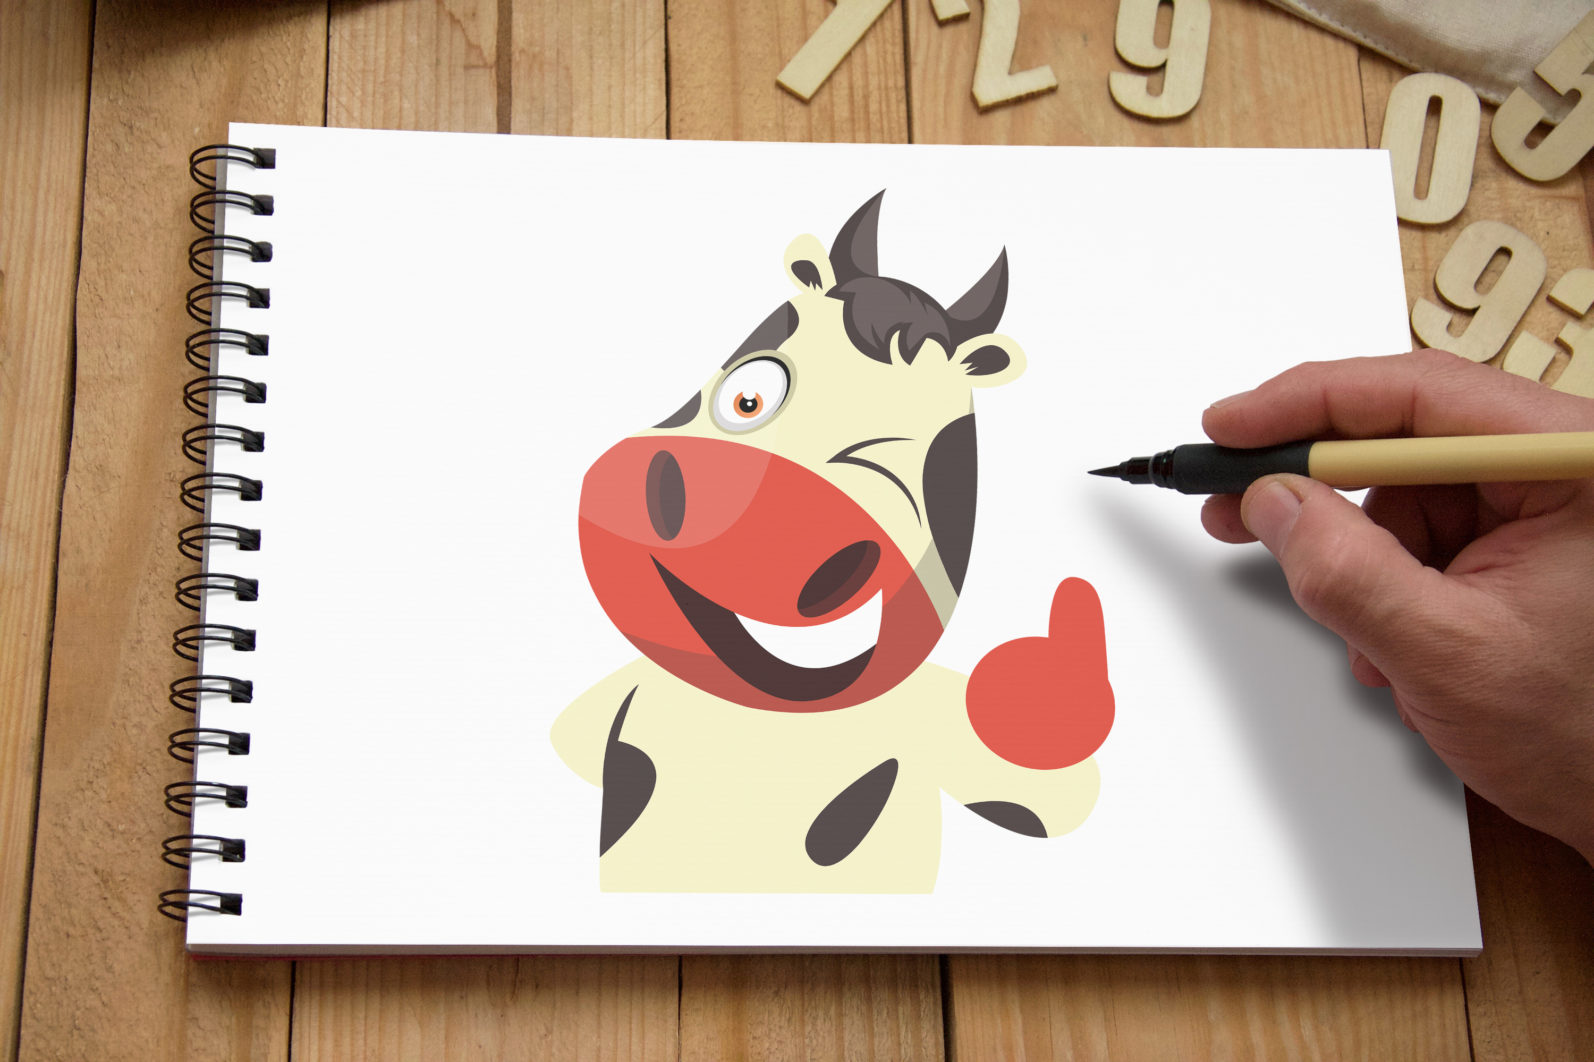 12x Cow Emotion Collection illustration. - 71 Cow DRAWING BOARD SECONDARY scaled -